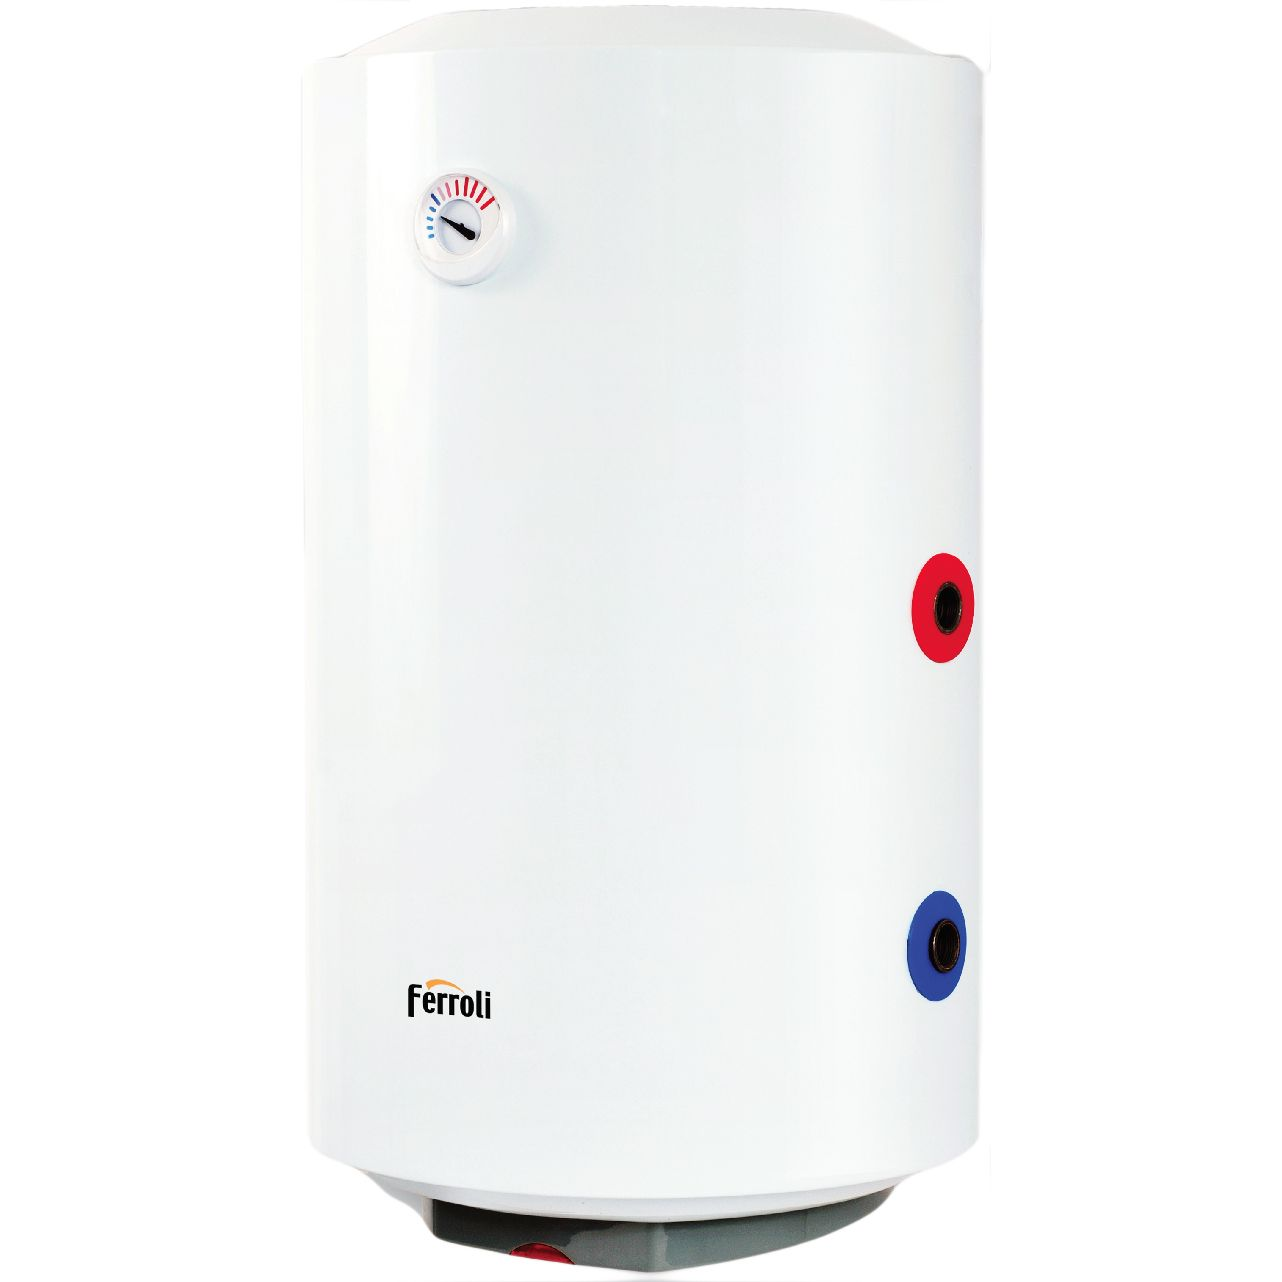 Boiler termoelectric cu serpentina Ferroli Power Thermo 100V, 1500 W, 100 L, 0.8 Mpa, Alb imagine fornello.ro